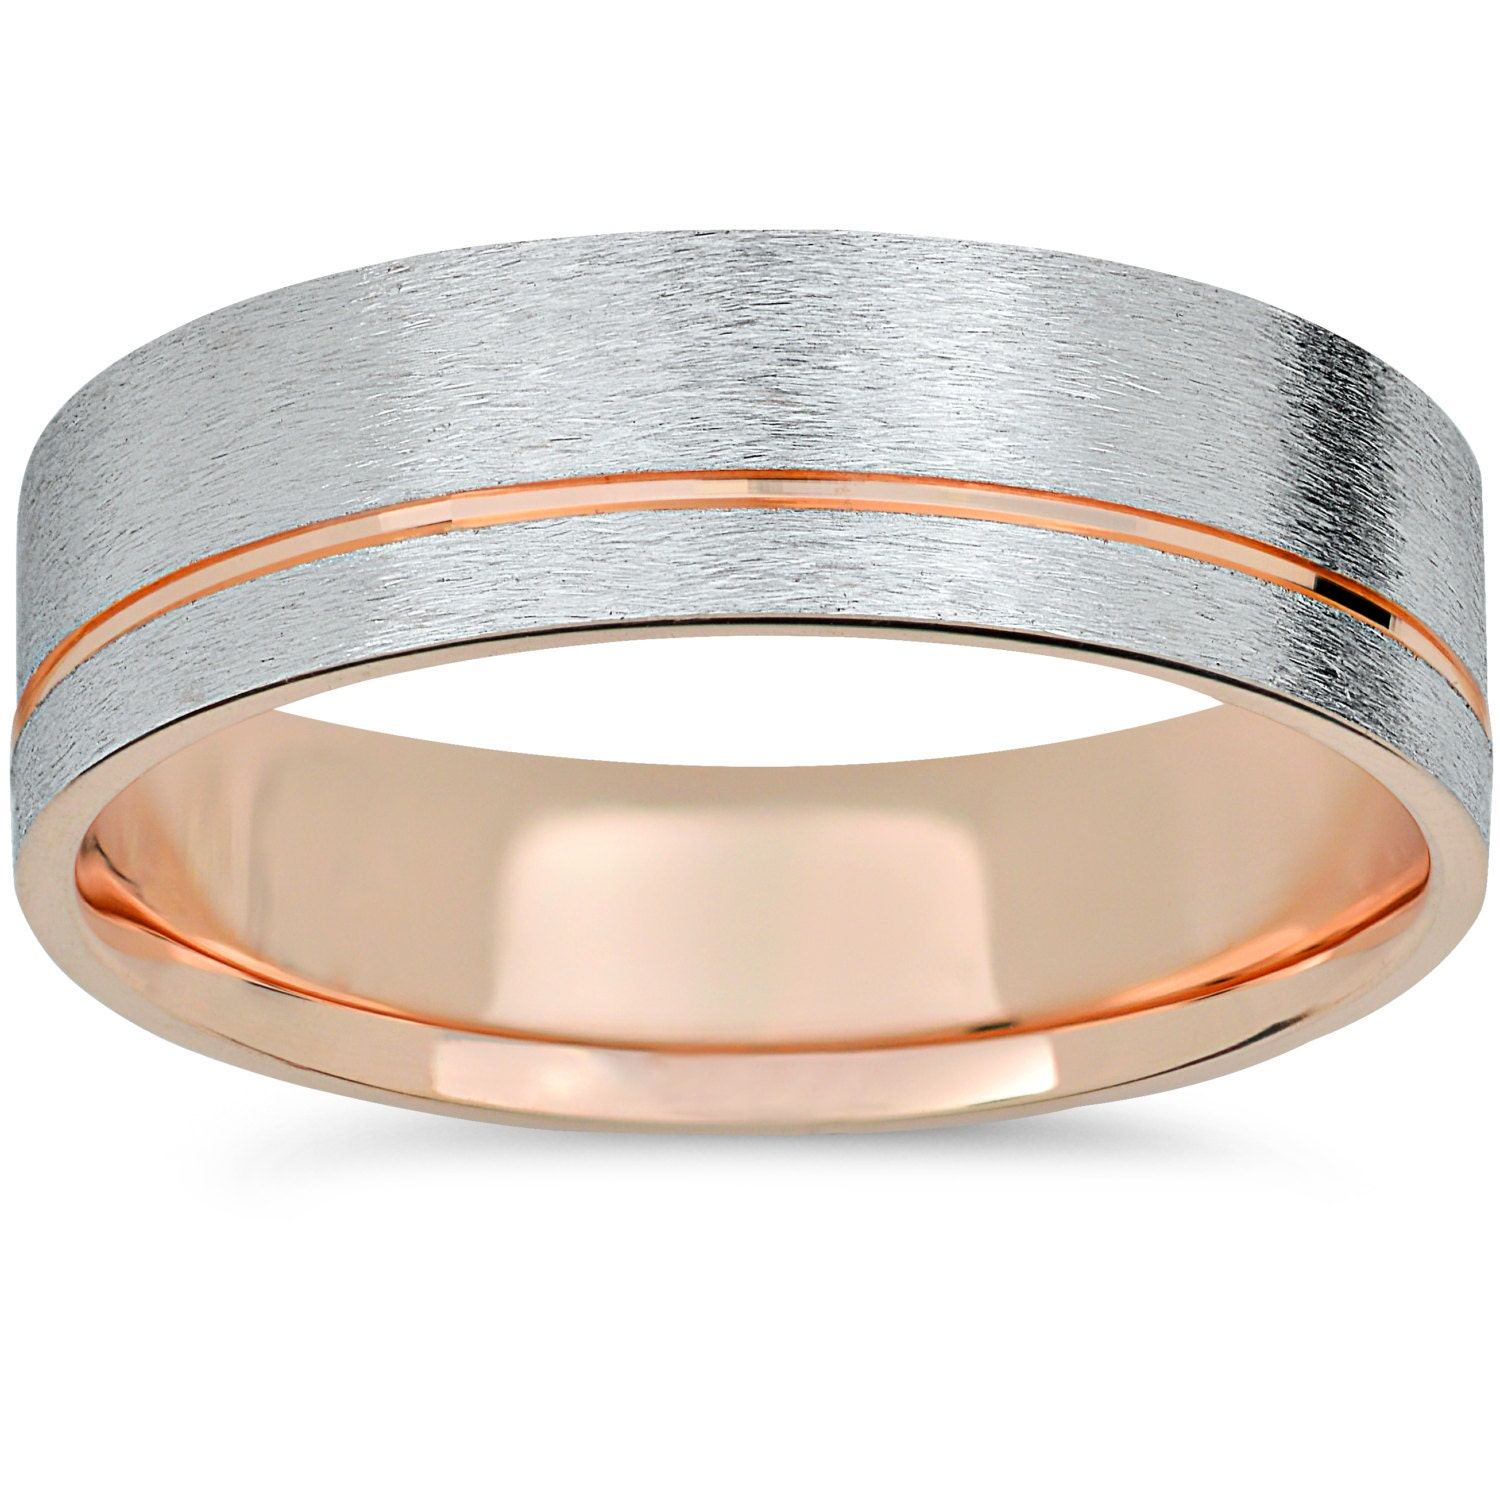 14k Rose Gold Amp White Gold Two Tone Wedding Band Mens Brushed